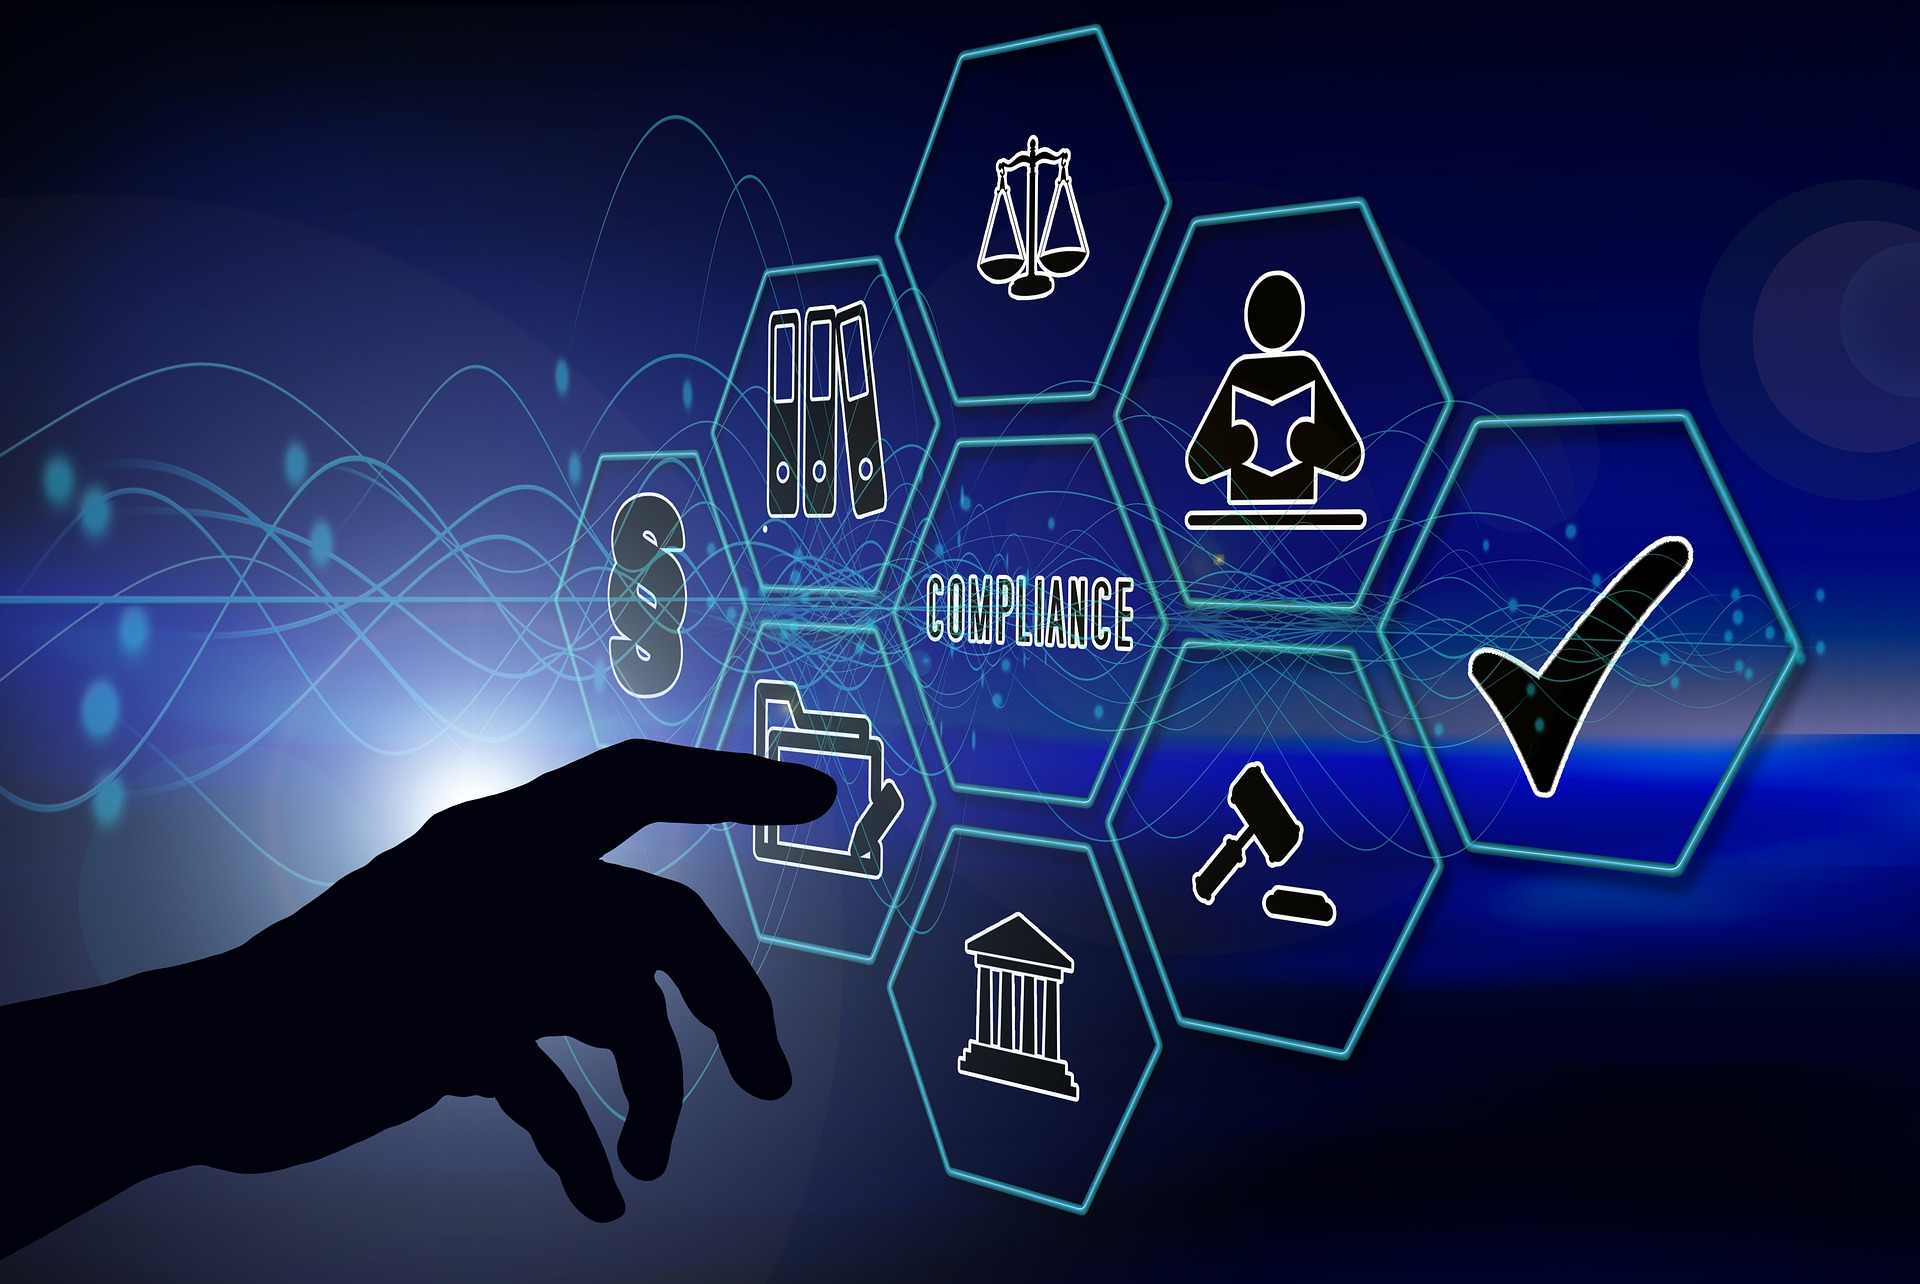 compliance illustration with hand pointing to icons